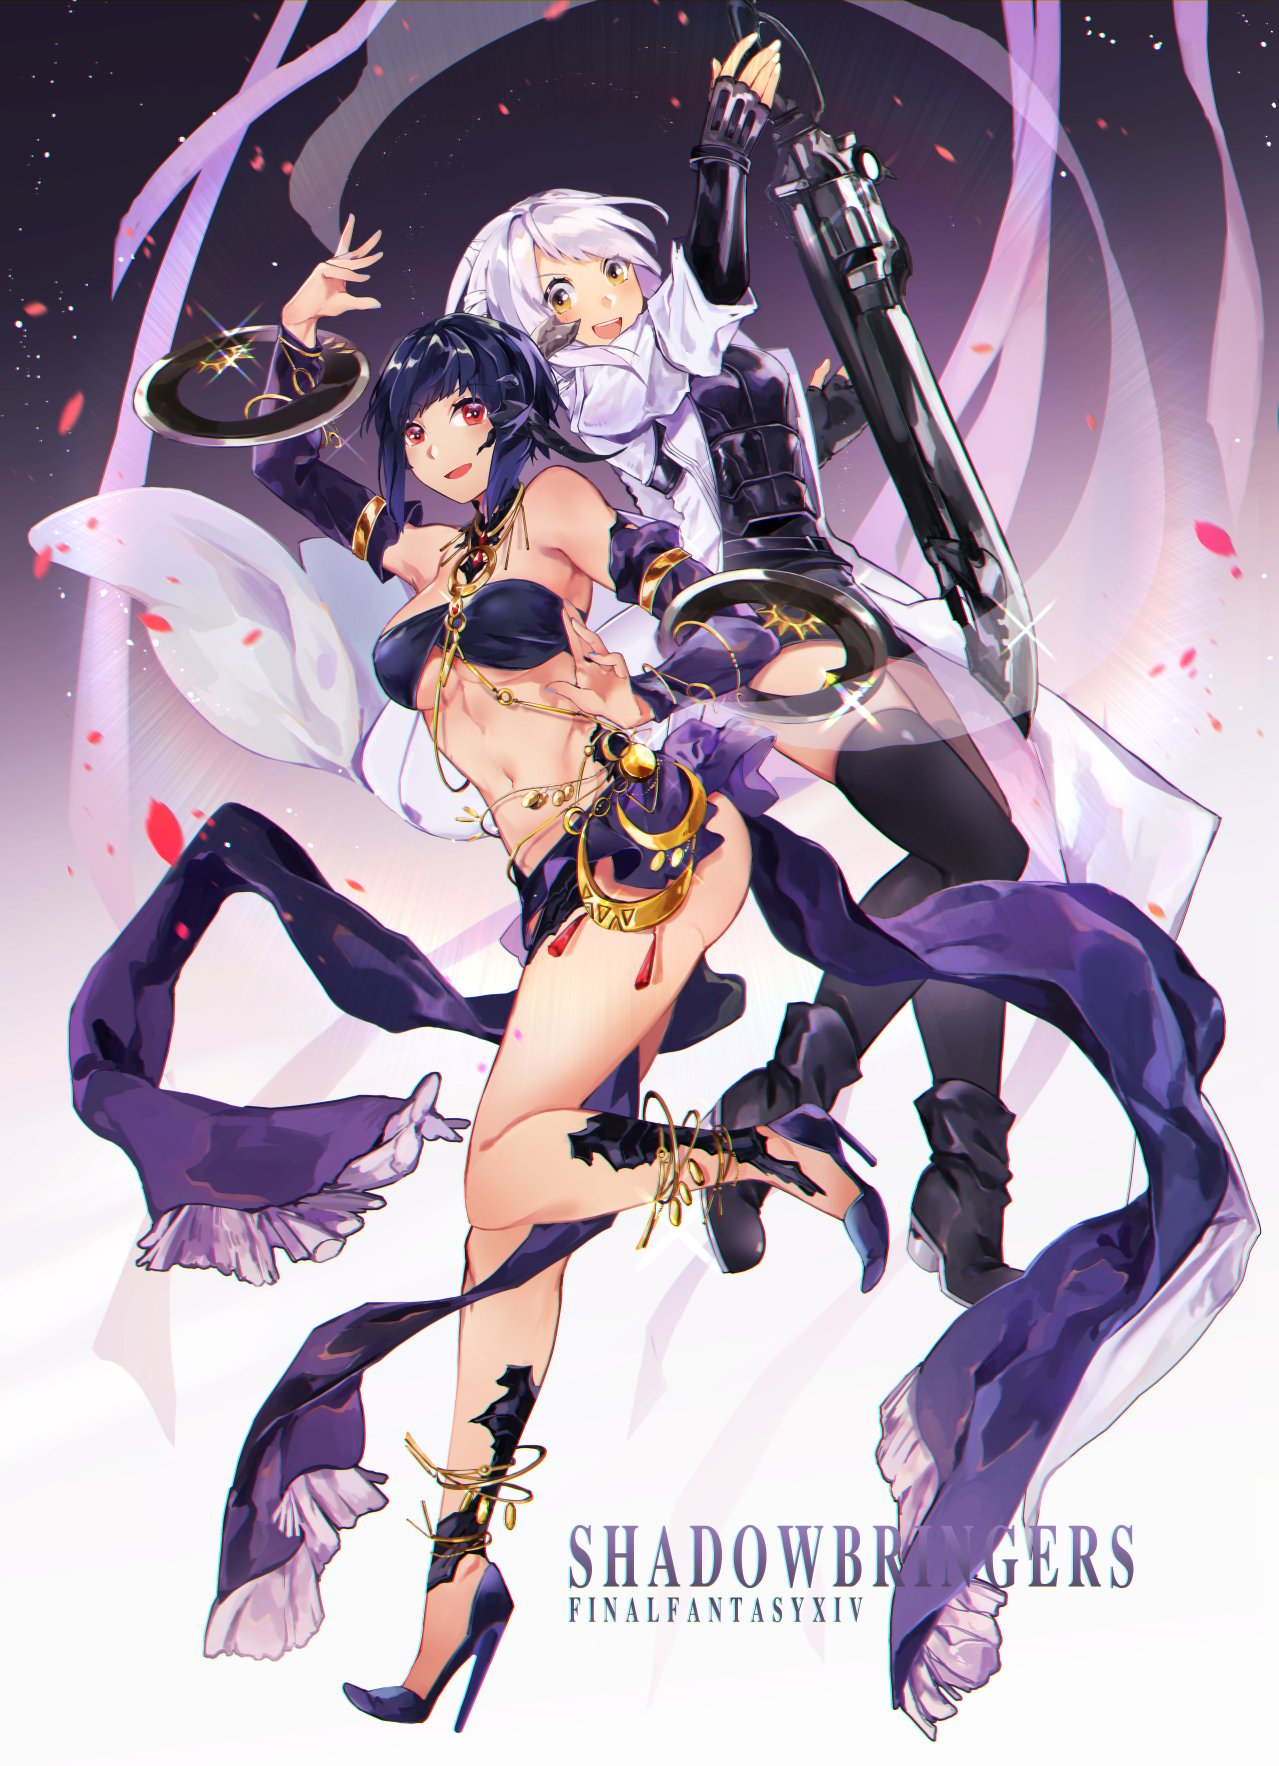 2girls ass au_ra bare_shoulders black_footwear black_hair black_legwear bra breasts chakram commentary dancer_(final_fantasy) detached_sleeves final_fantasy final_fantasy_xiv gun gunbreaker_(final_fantasy) high_heels highres hite_hair jacket jewelry looking_at_viewer medium_breasts multiple_girls navel original purple_bra red_eyes ring rirene_rn scales sleeves_rolled_up sword thigh-highs underwear weapon white_jacket yellow_eyes